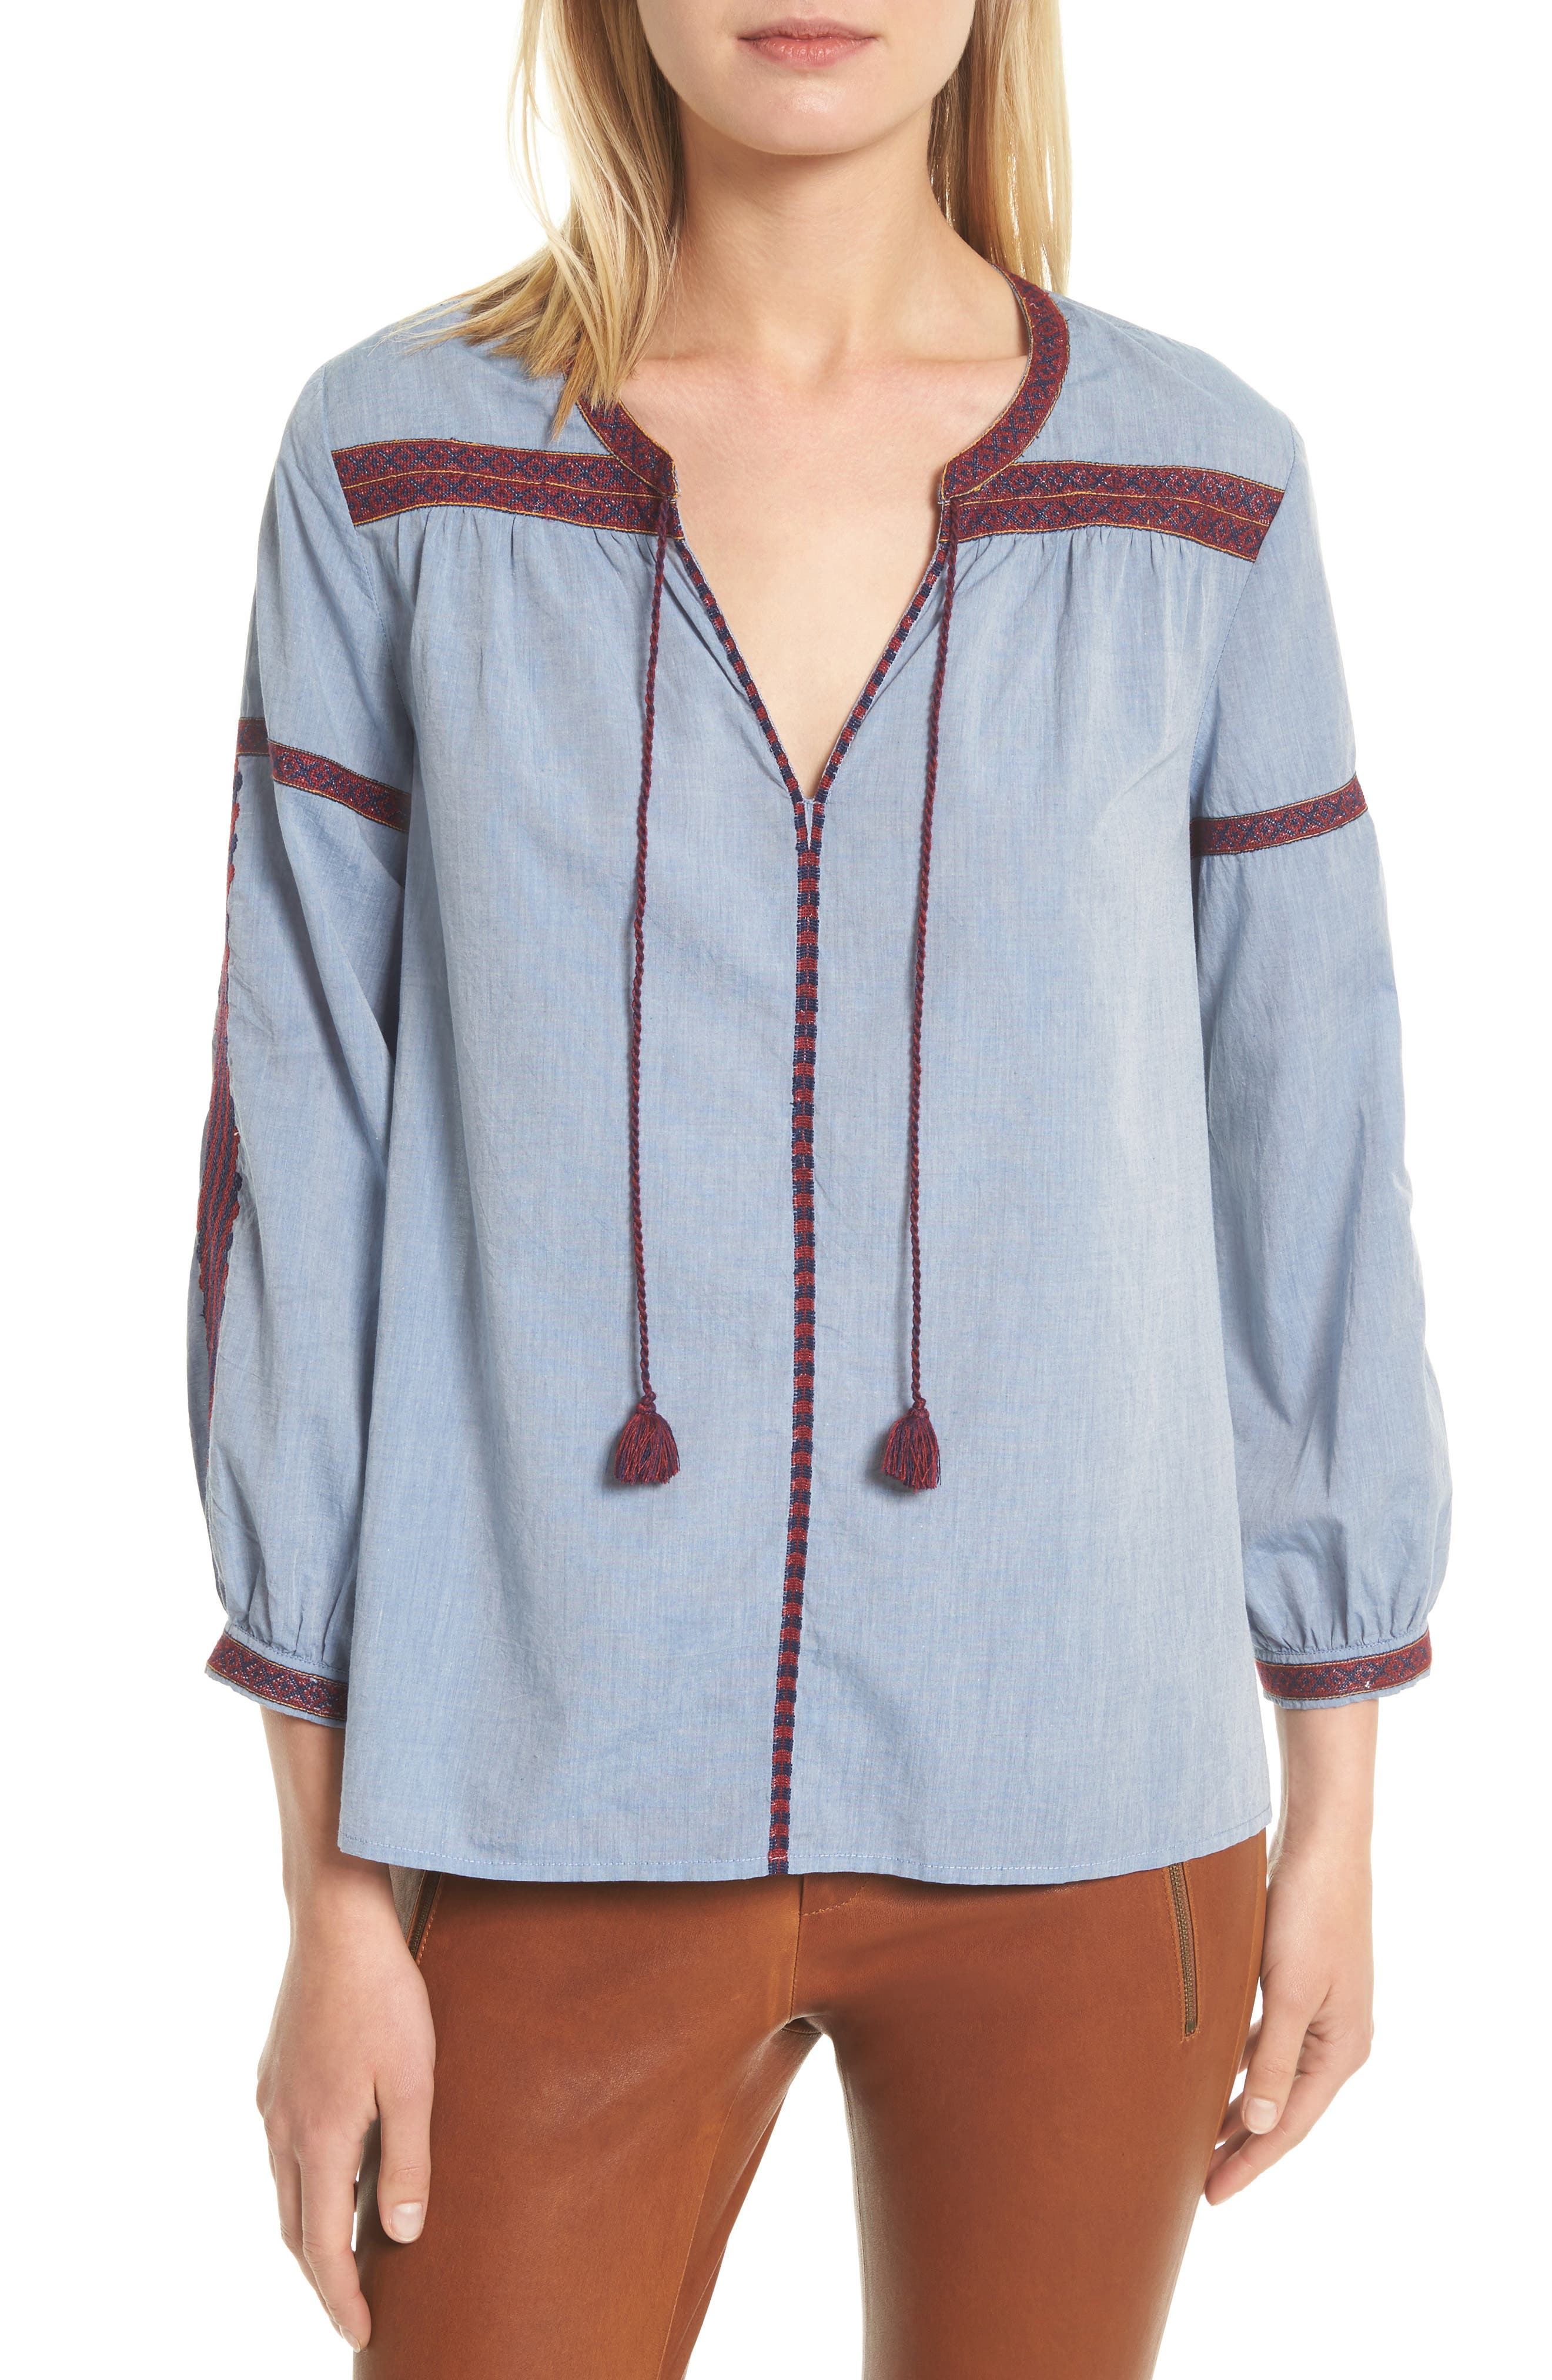 Marlen Embroidered Chambray Top,                         Main,                         color, Chambray/ Currant/ Dark Navy